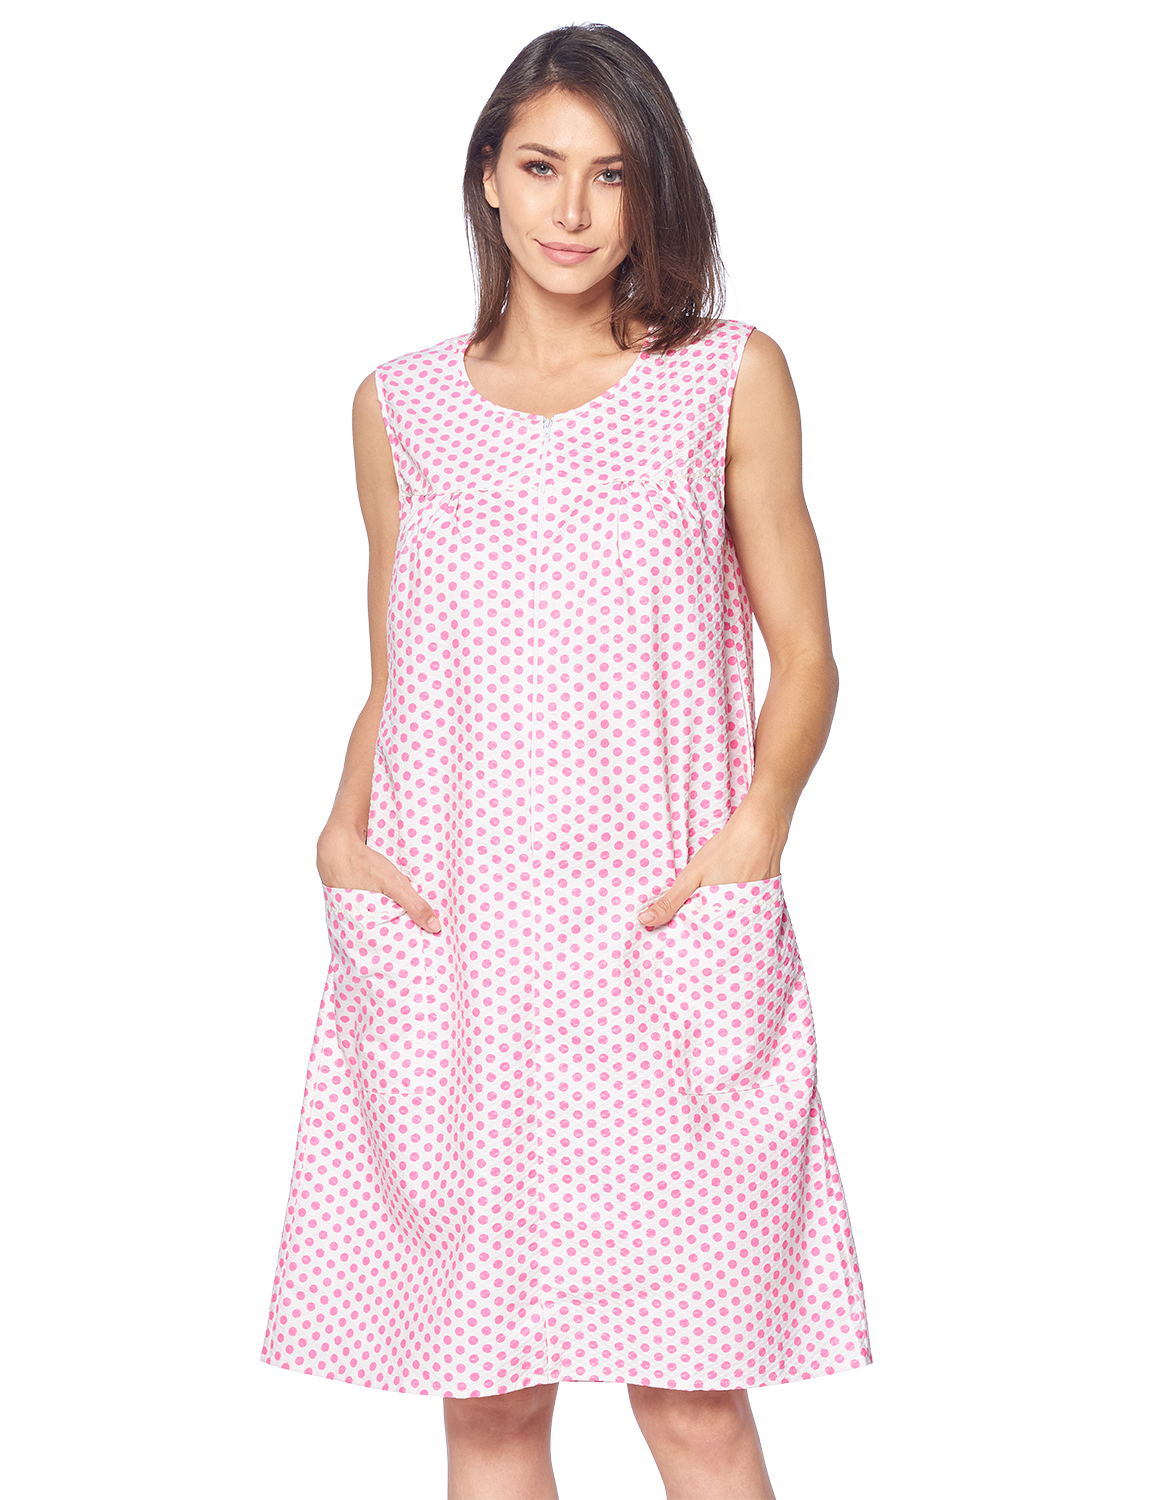 Casual Nights Women's Zipper Front House Dress Duster Sleeveless Housecoat Lounger Robe, Polka Dots Pink, XX-Large